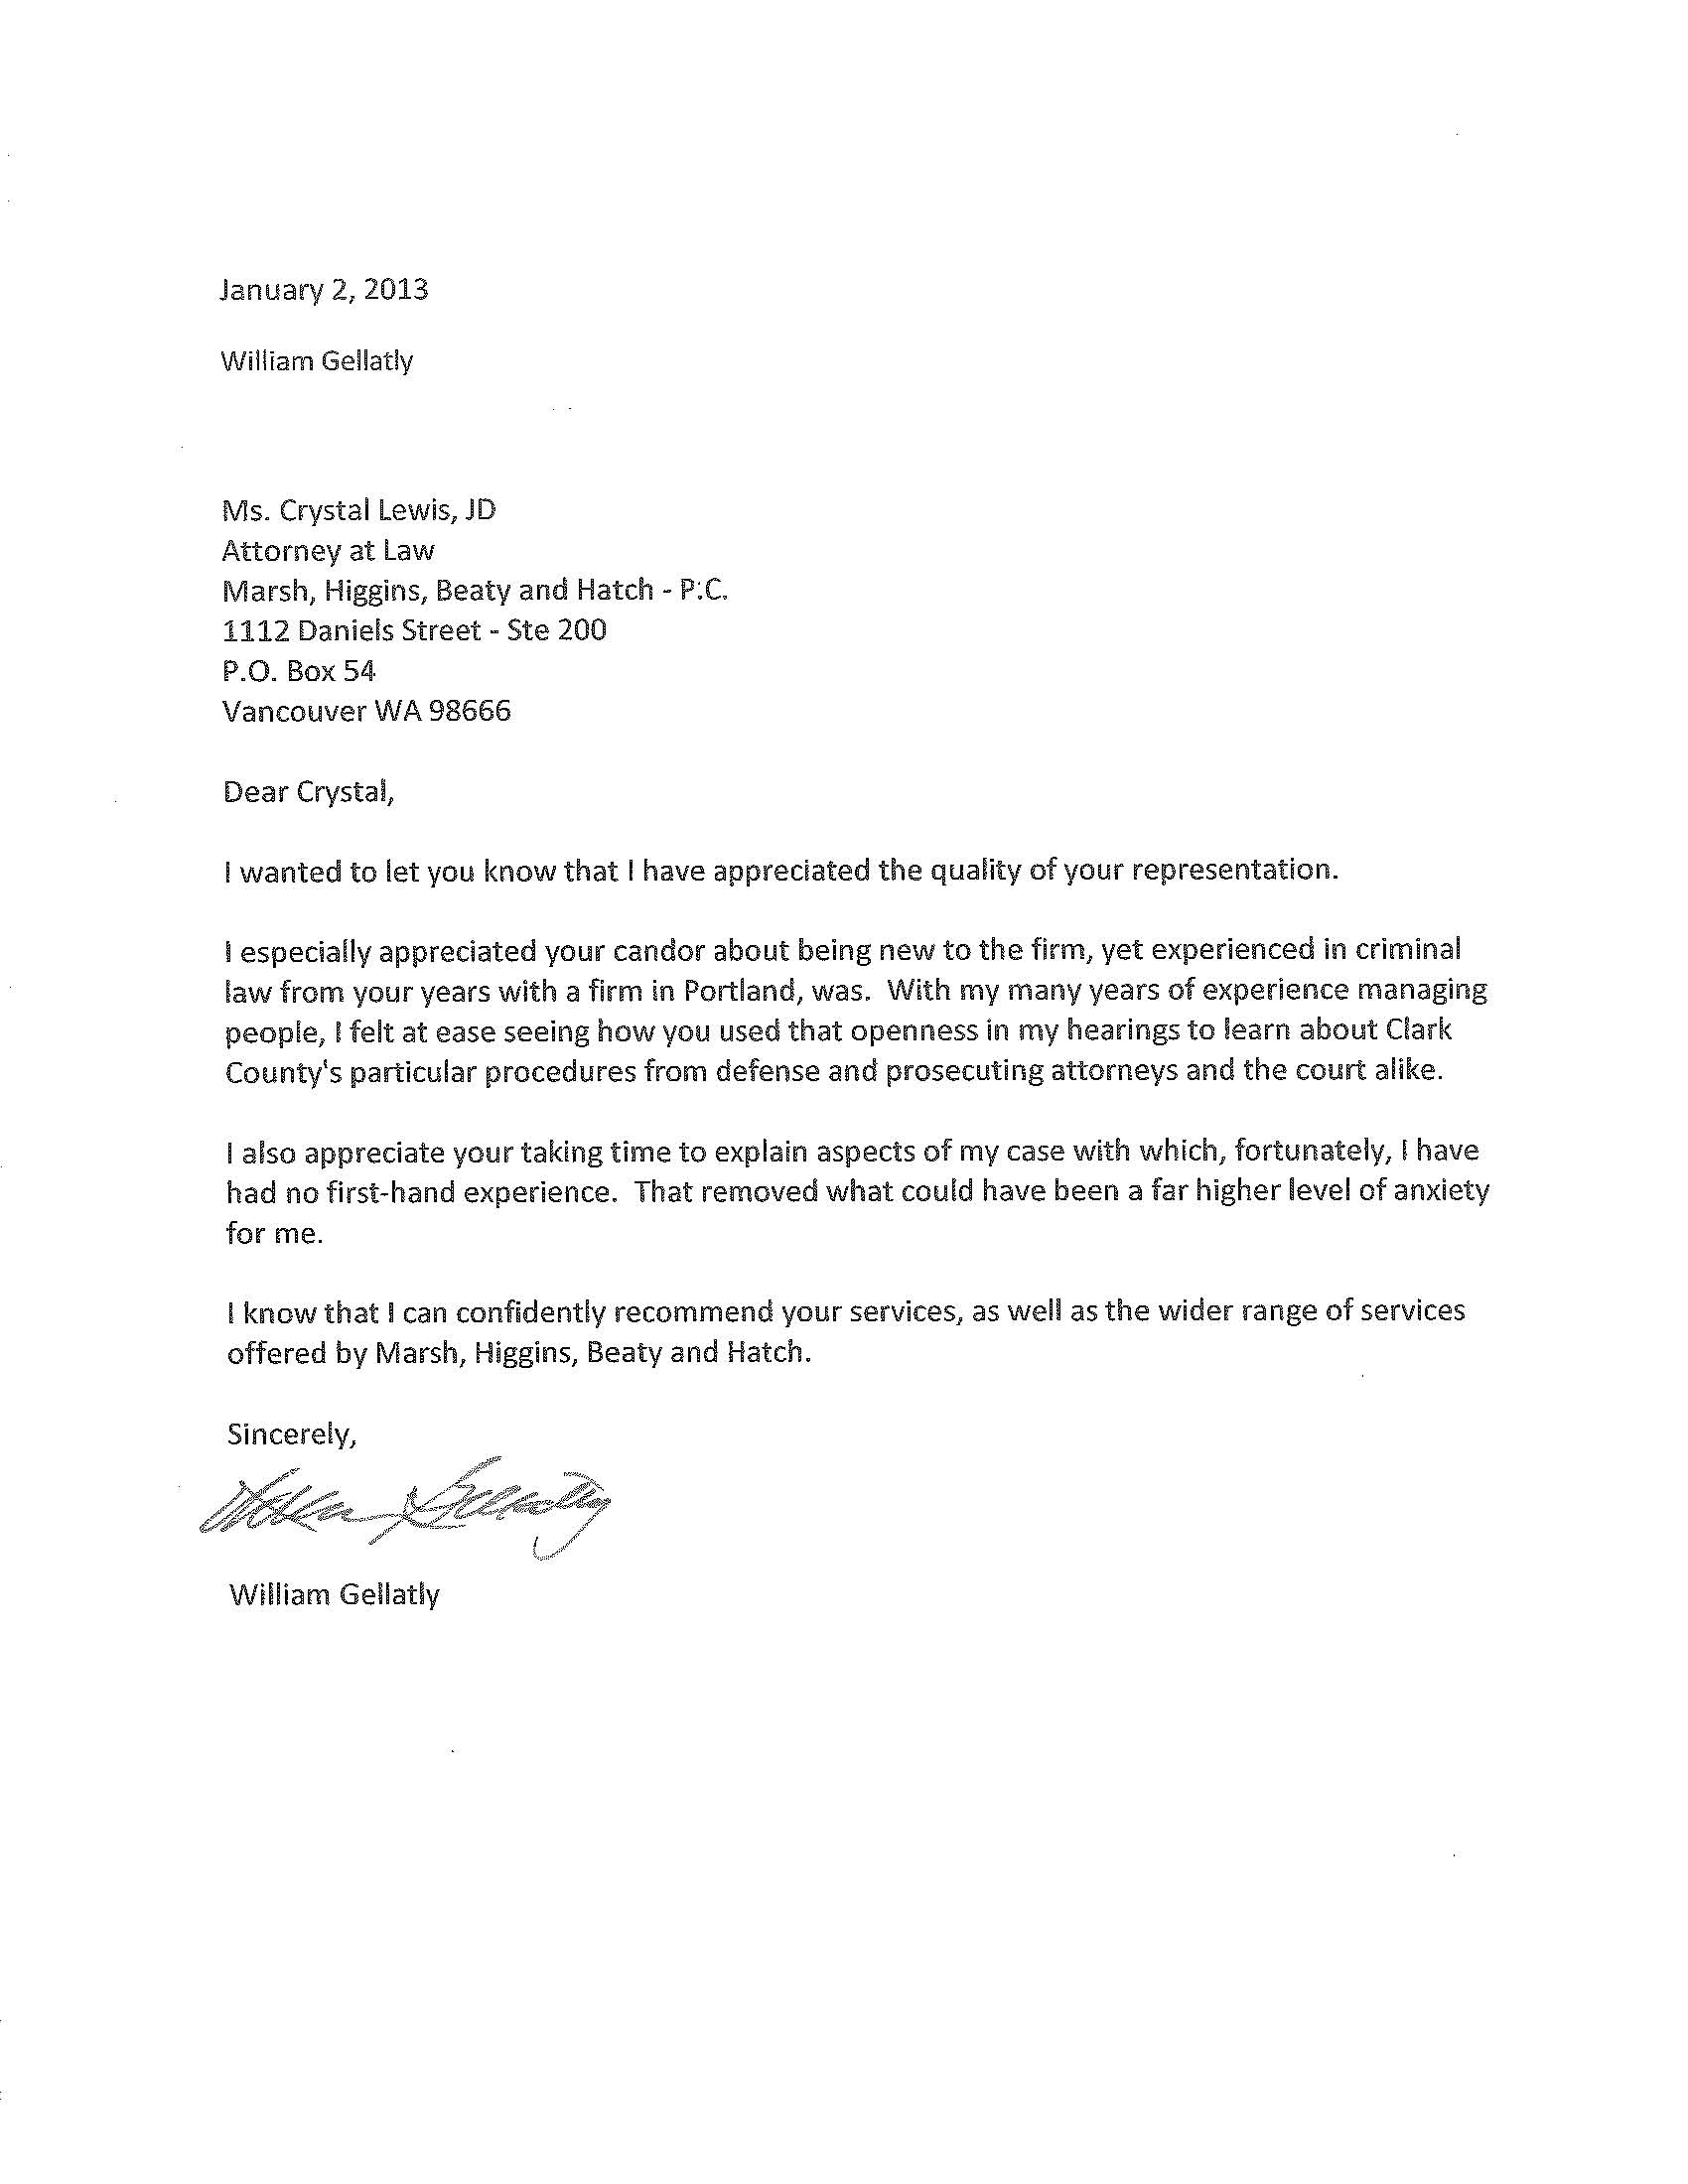 appointment letter thank you sample customer service resume appointment letter thank you thank you letter adrian college client s thanks to new associate